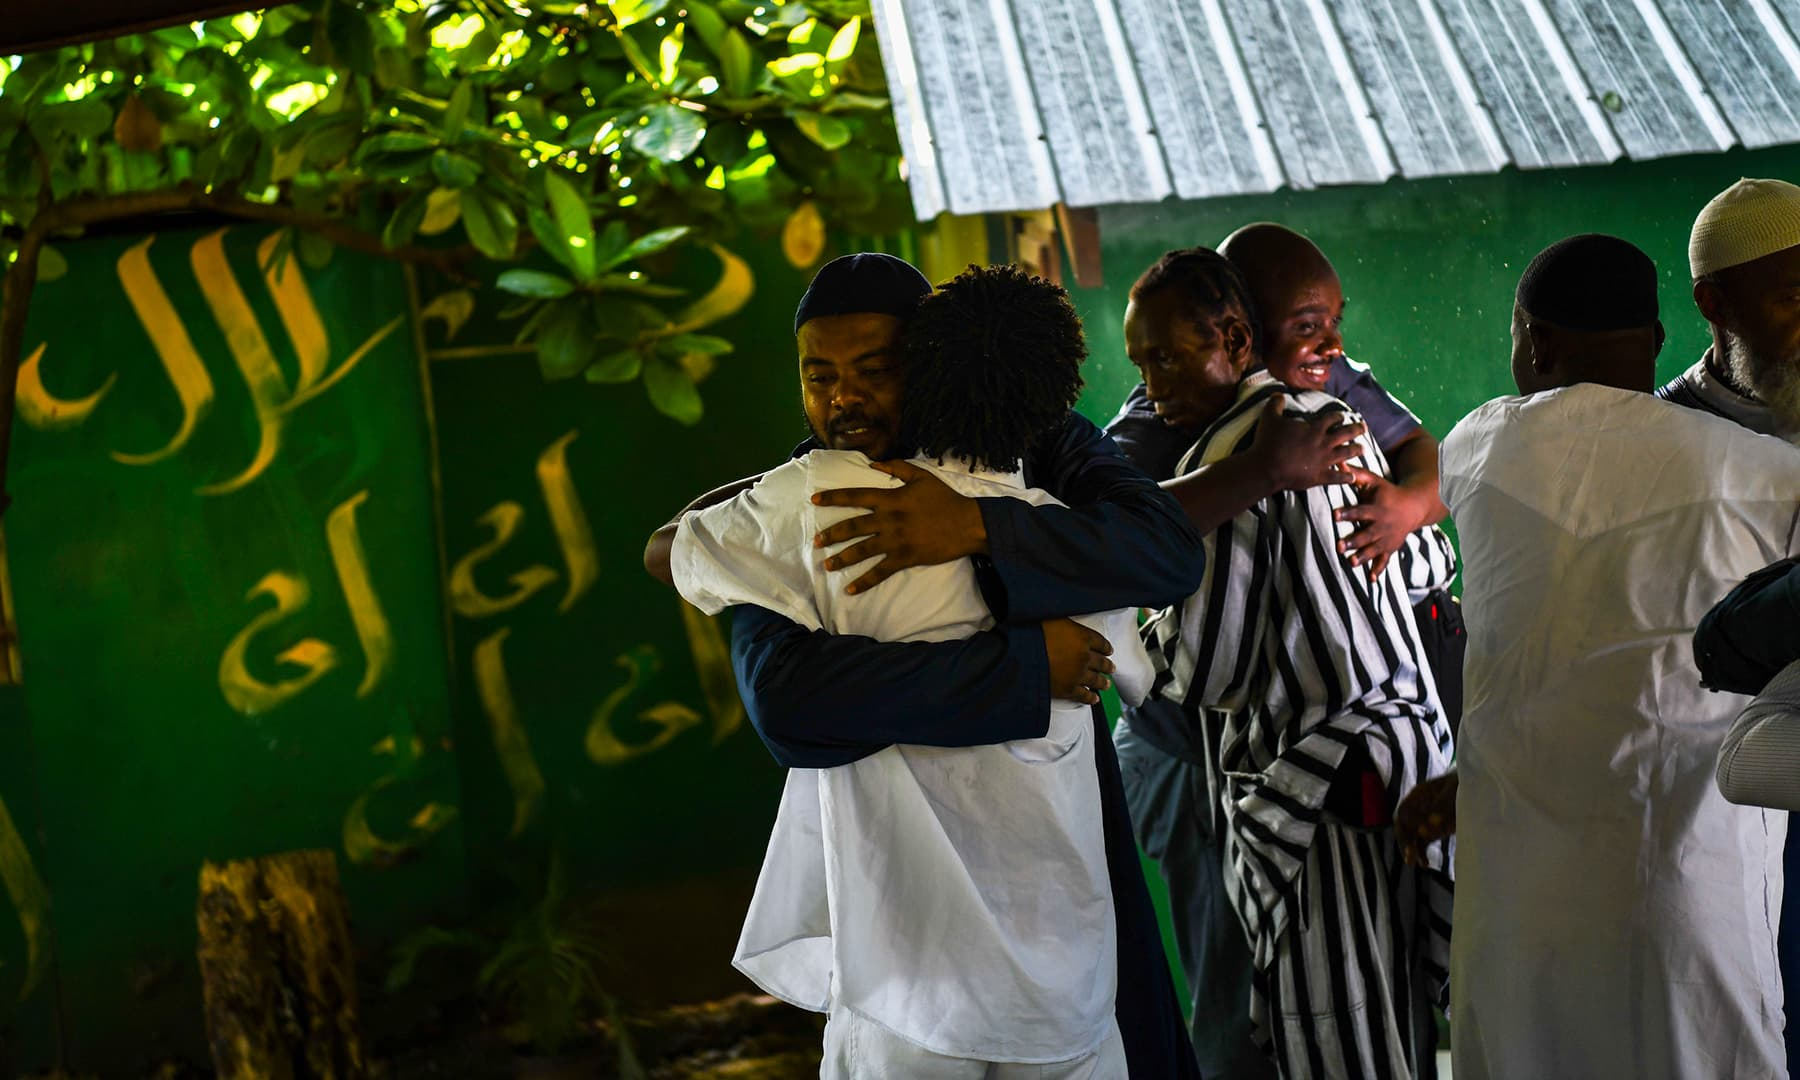 Muslim men hug each other on the occasion of Eidul Fitr at a local mosque in Port-au-Prince, on June 5. — AFP